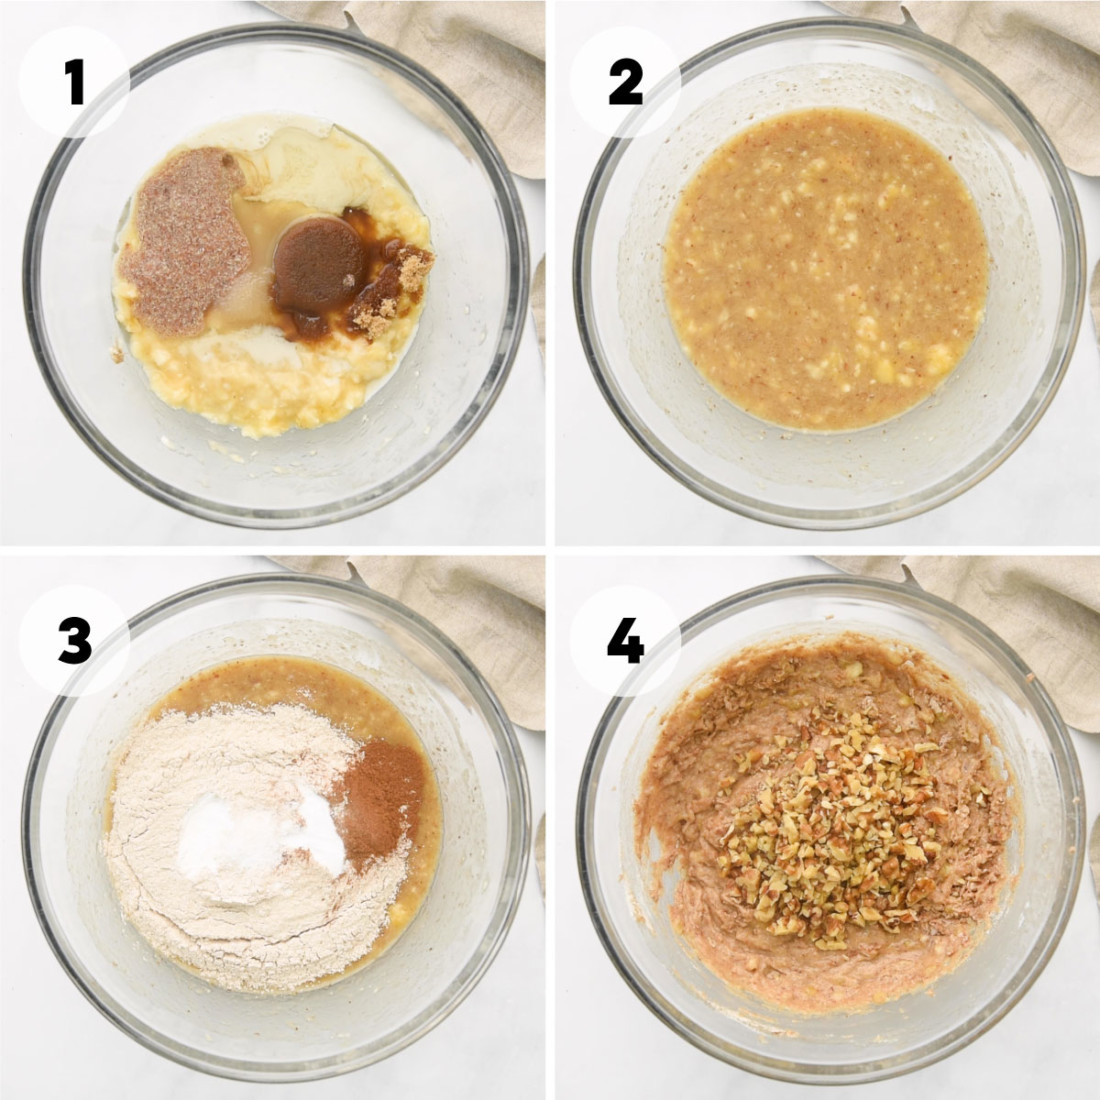 four steps for how to make the muffin batter